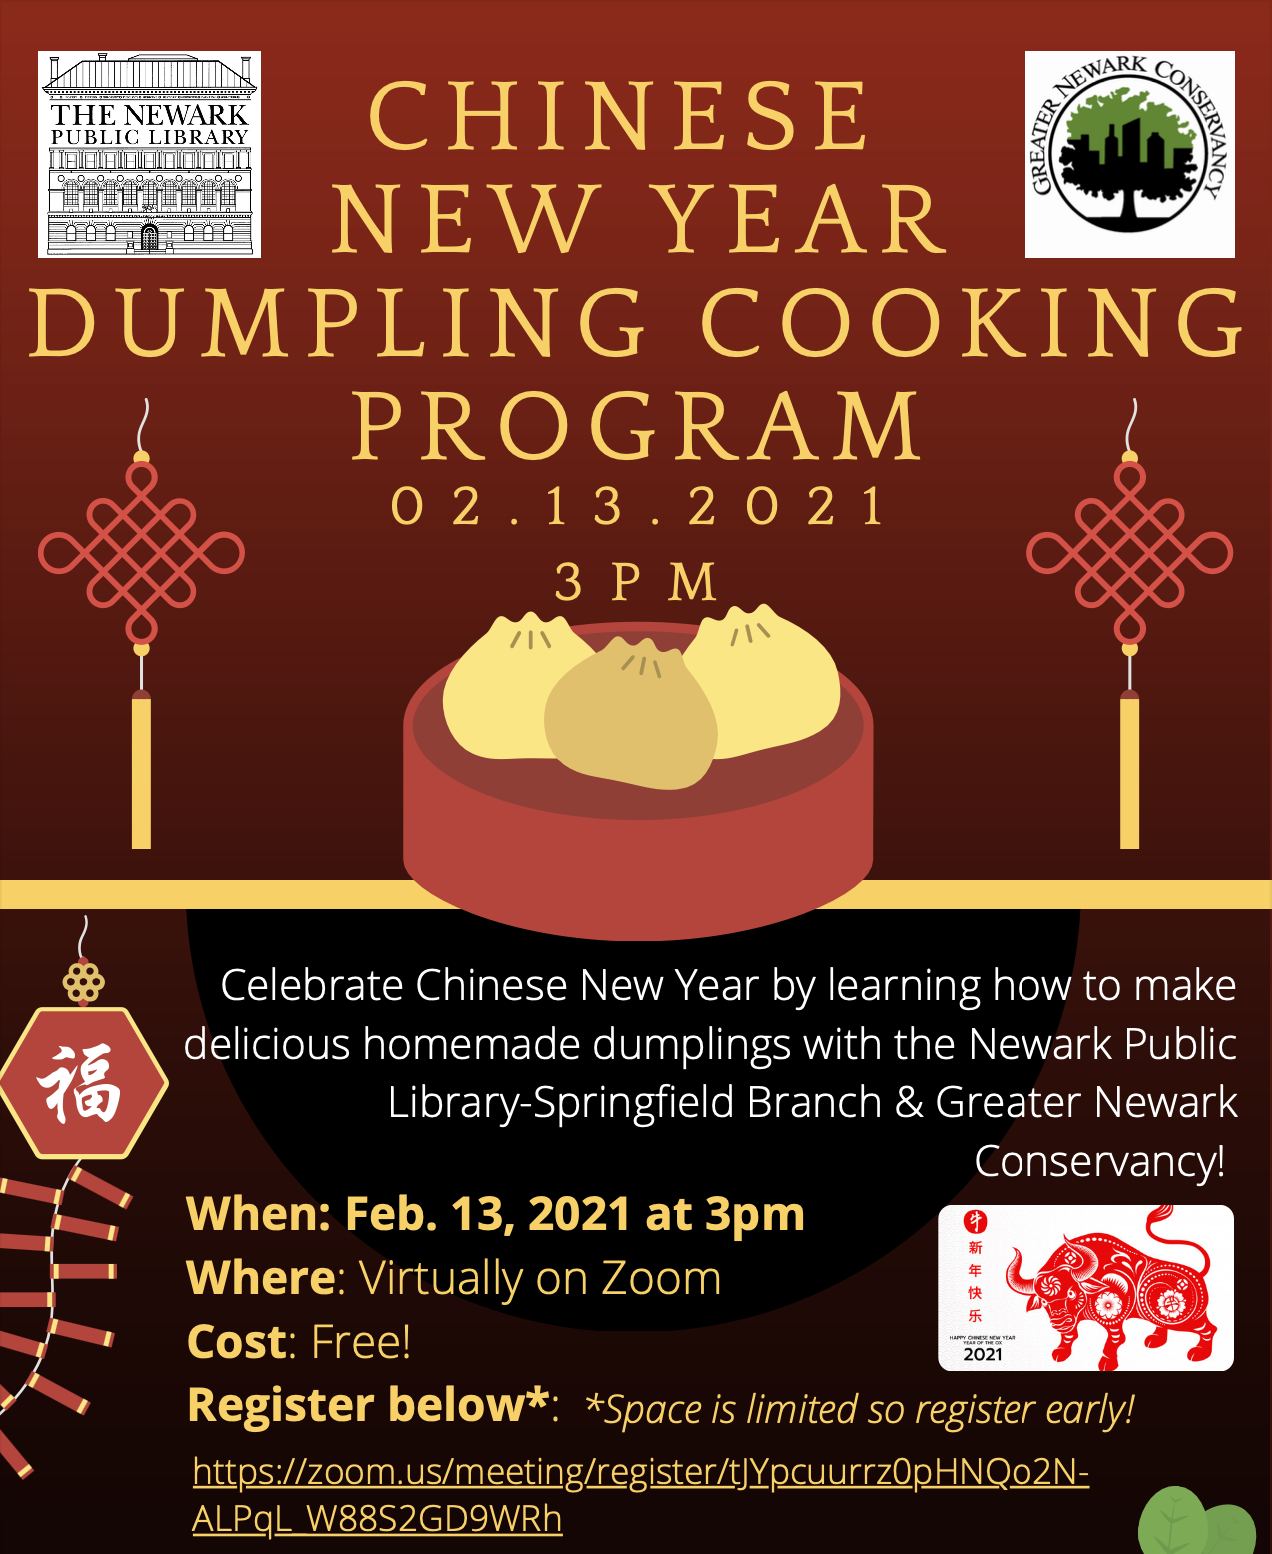 Chinese New Year Dumpling Cooking